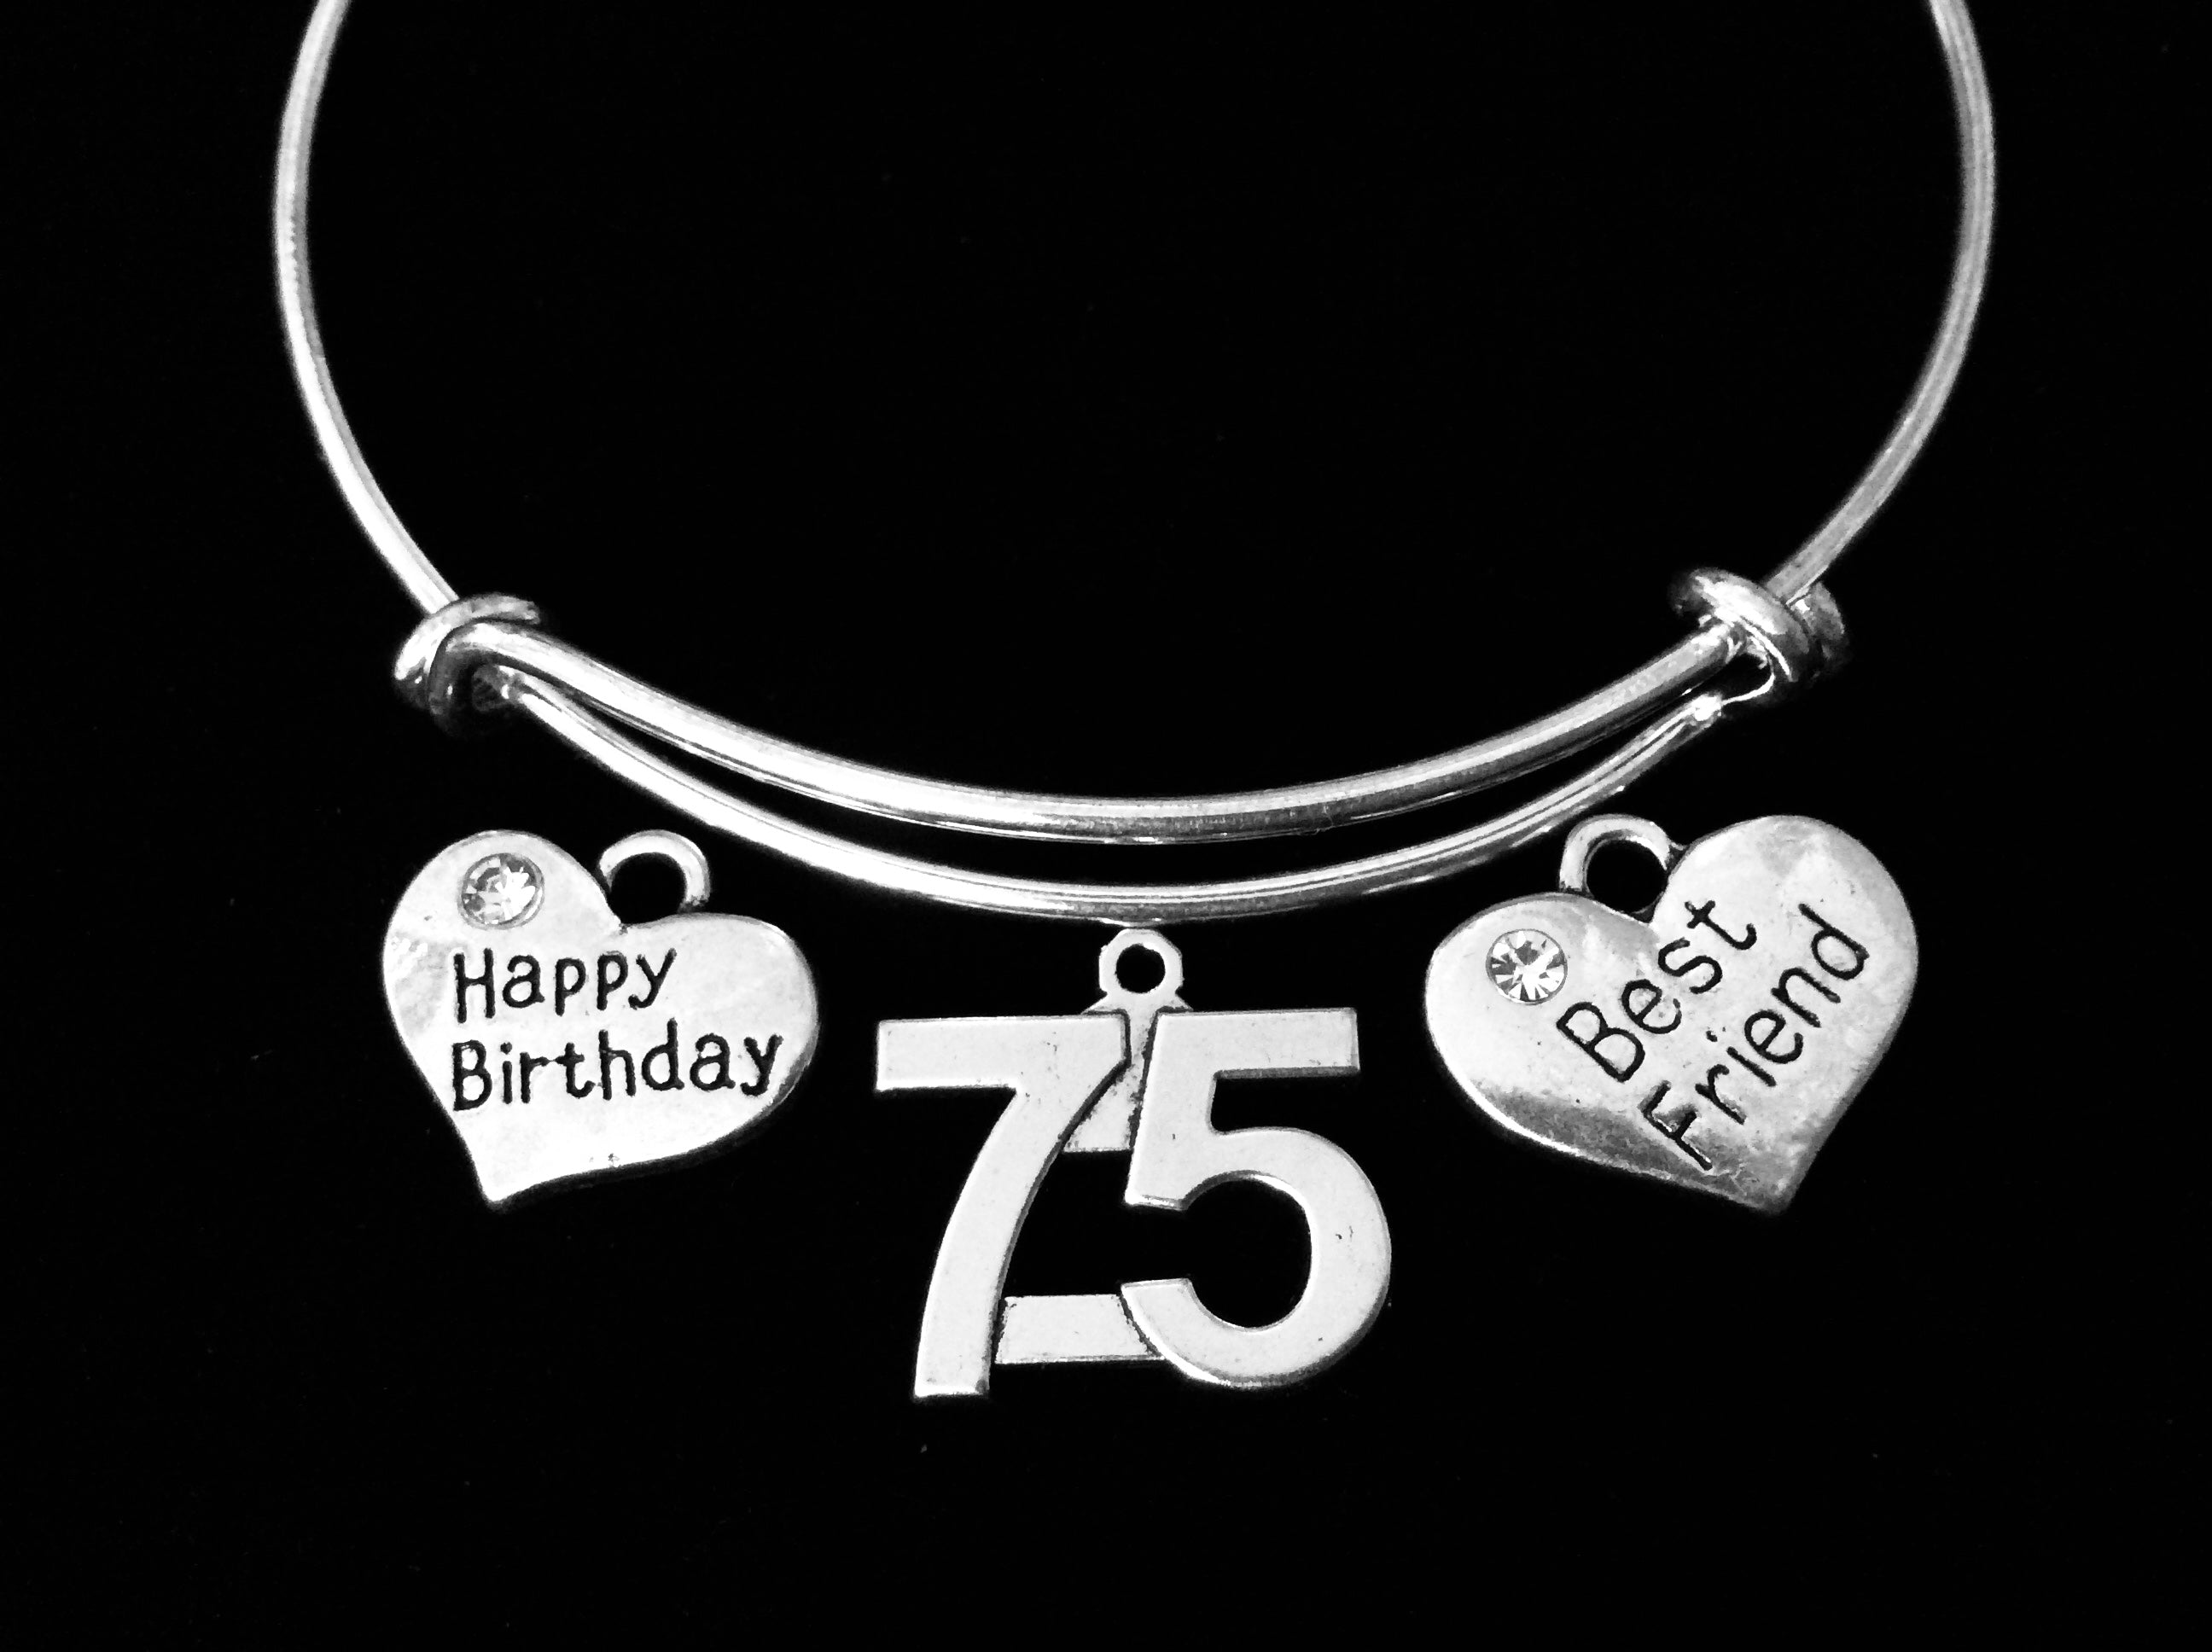 75 Happy Birthday 75th Birthday Best Friend Jewelry Adjustable Bracelet Silver Expandable Charm Bracelet Bangle Trendy Gift